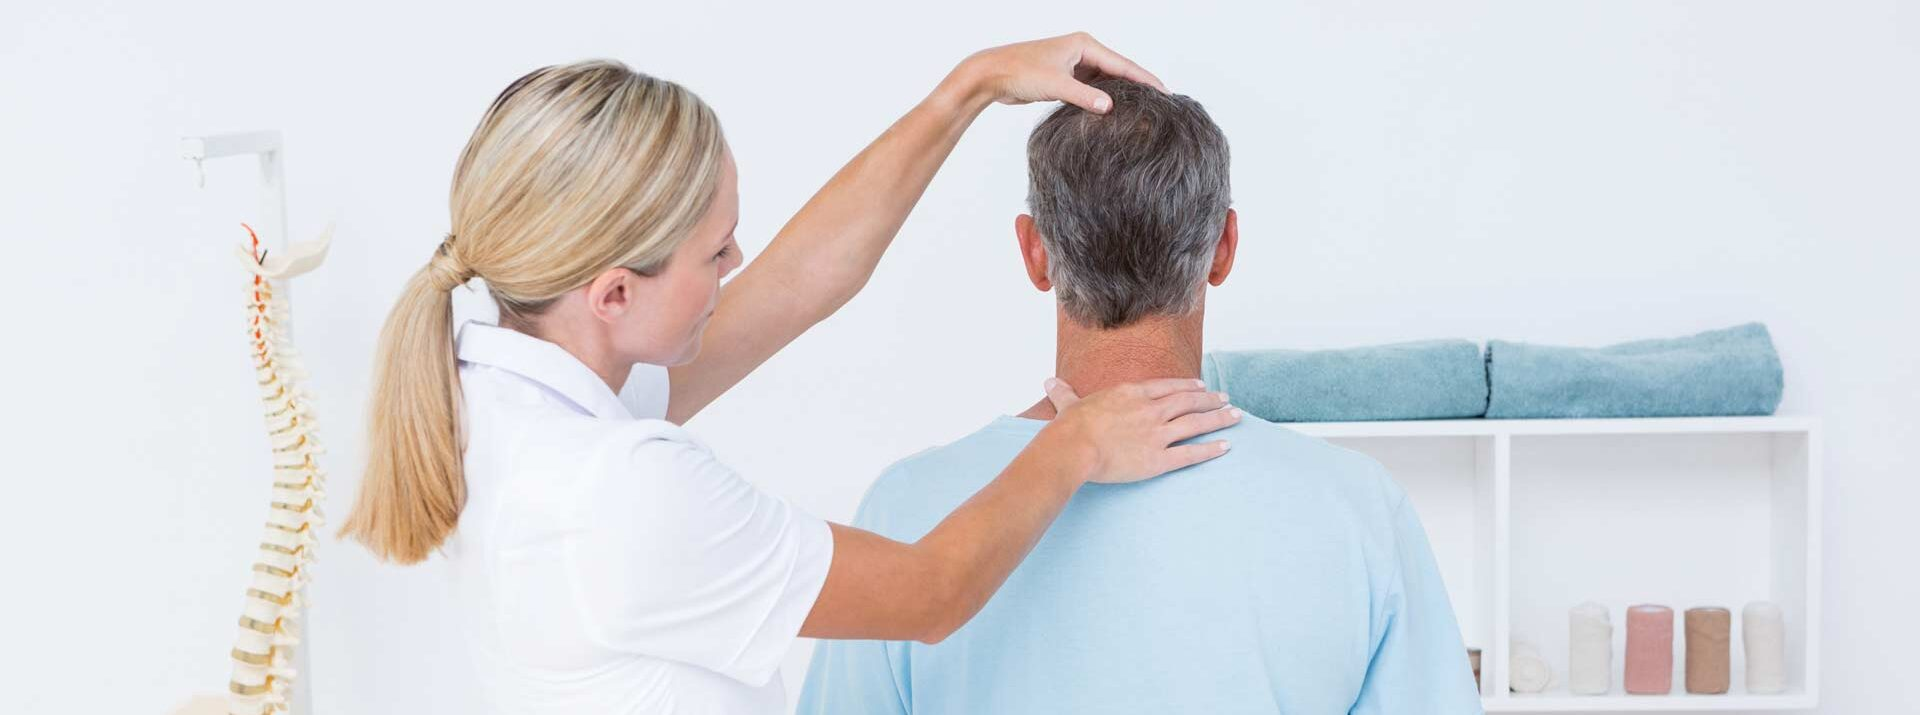 chiropractic care - neck pain